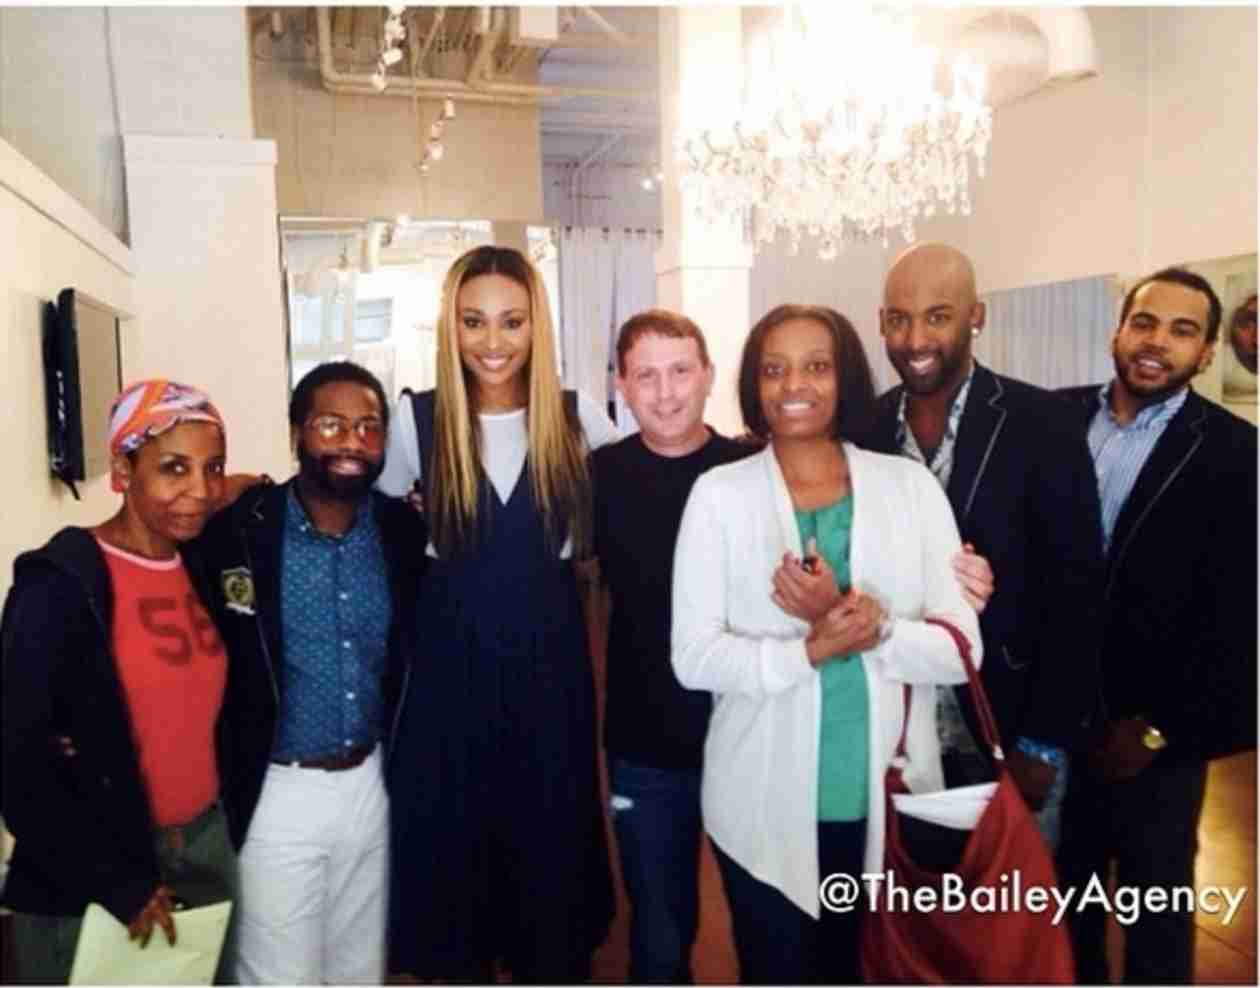 Cynthia Bailey's Modeling Agency Gets a New Gig — What Celeb's Company Hired Them?